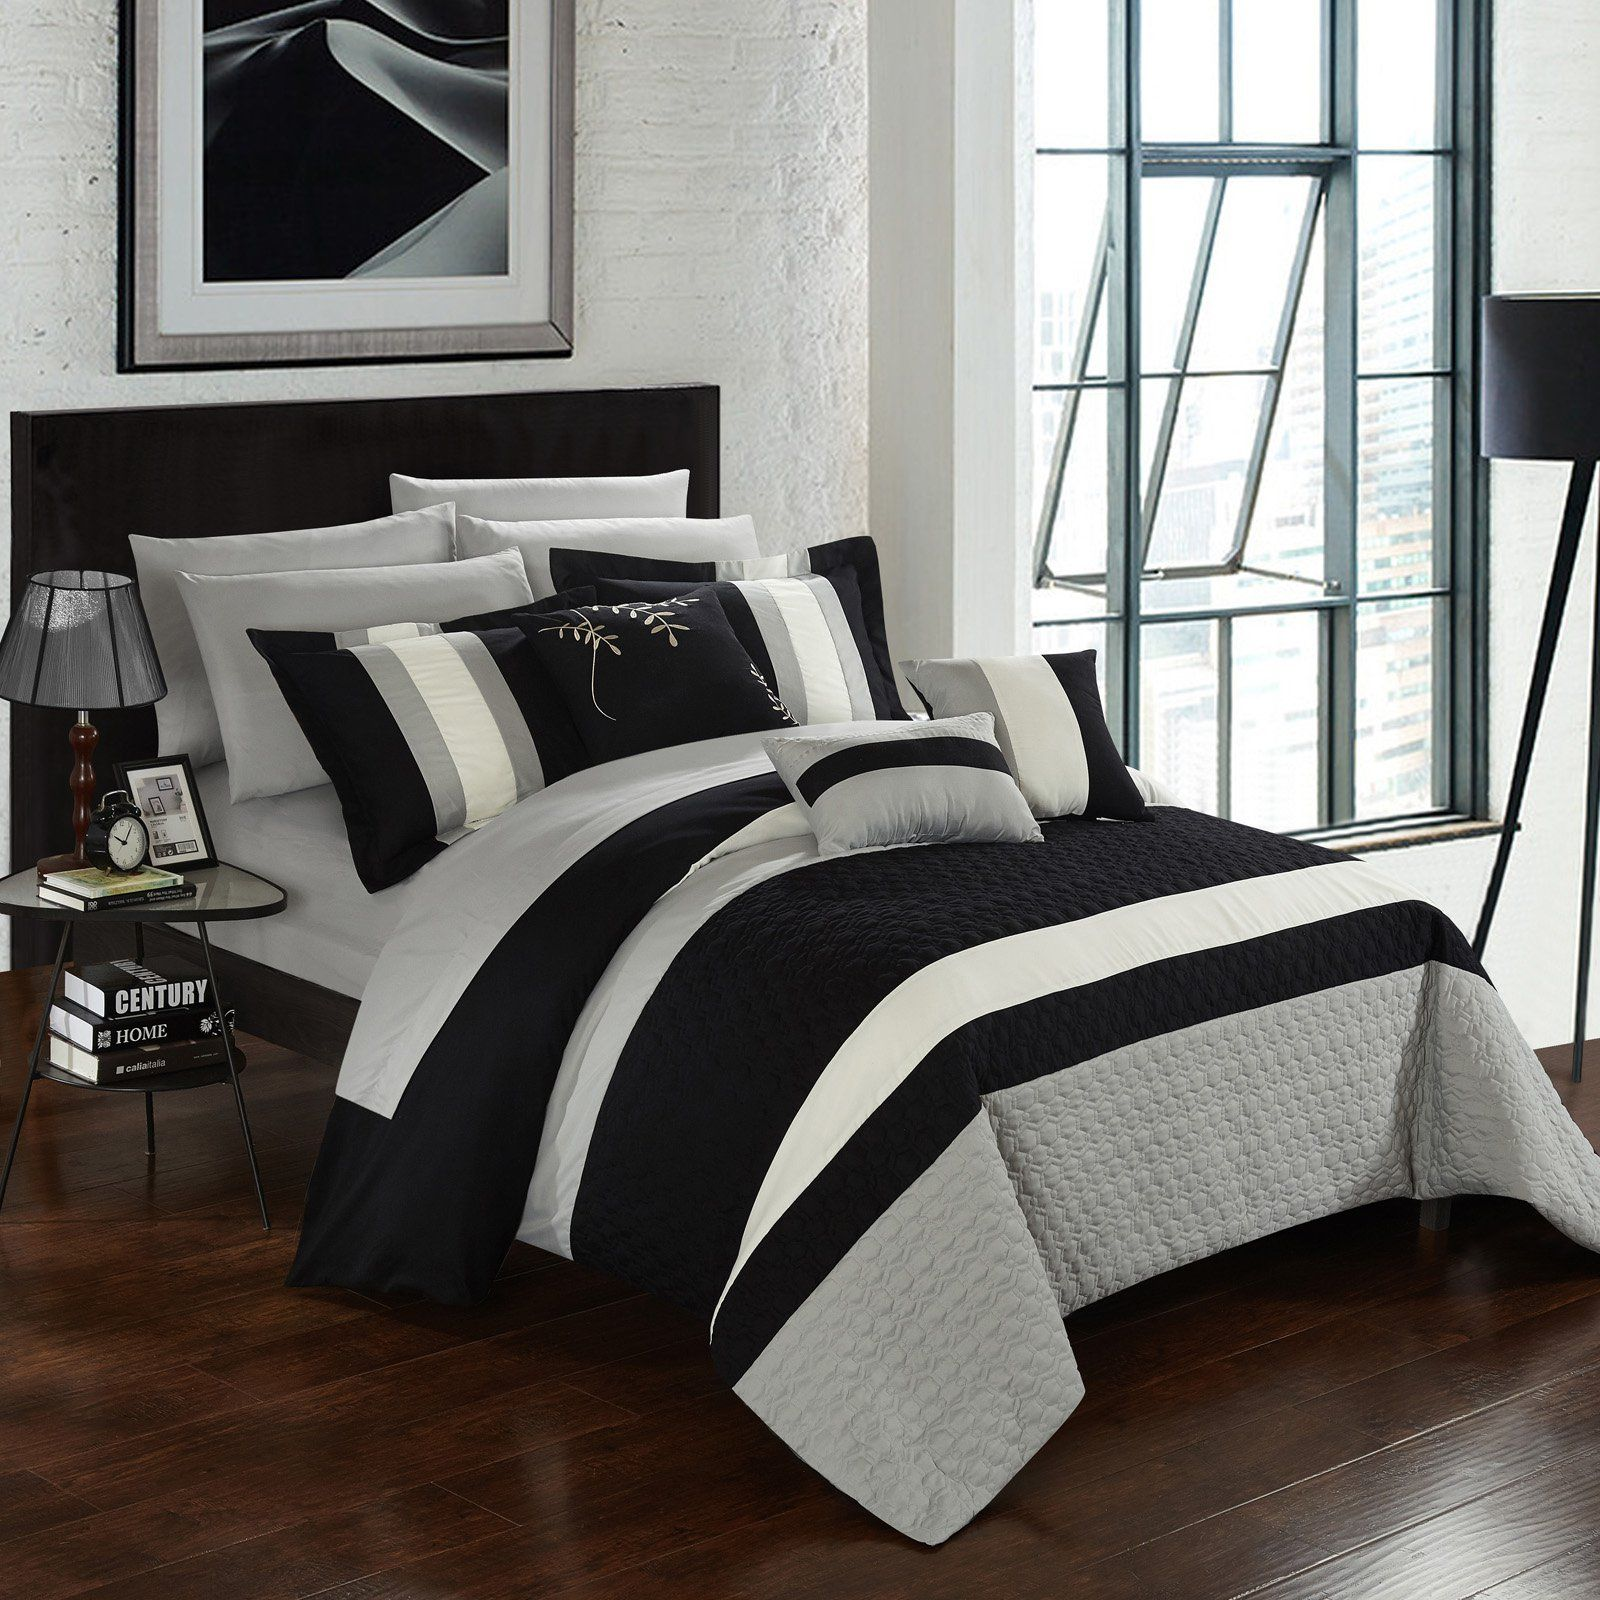 Chic Home Jared Bed In A Bag Comforter Set Black Products In